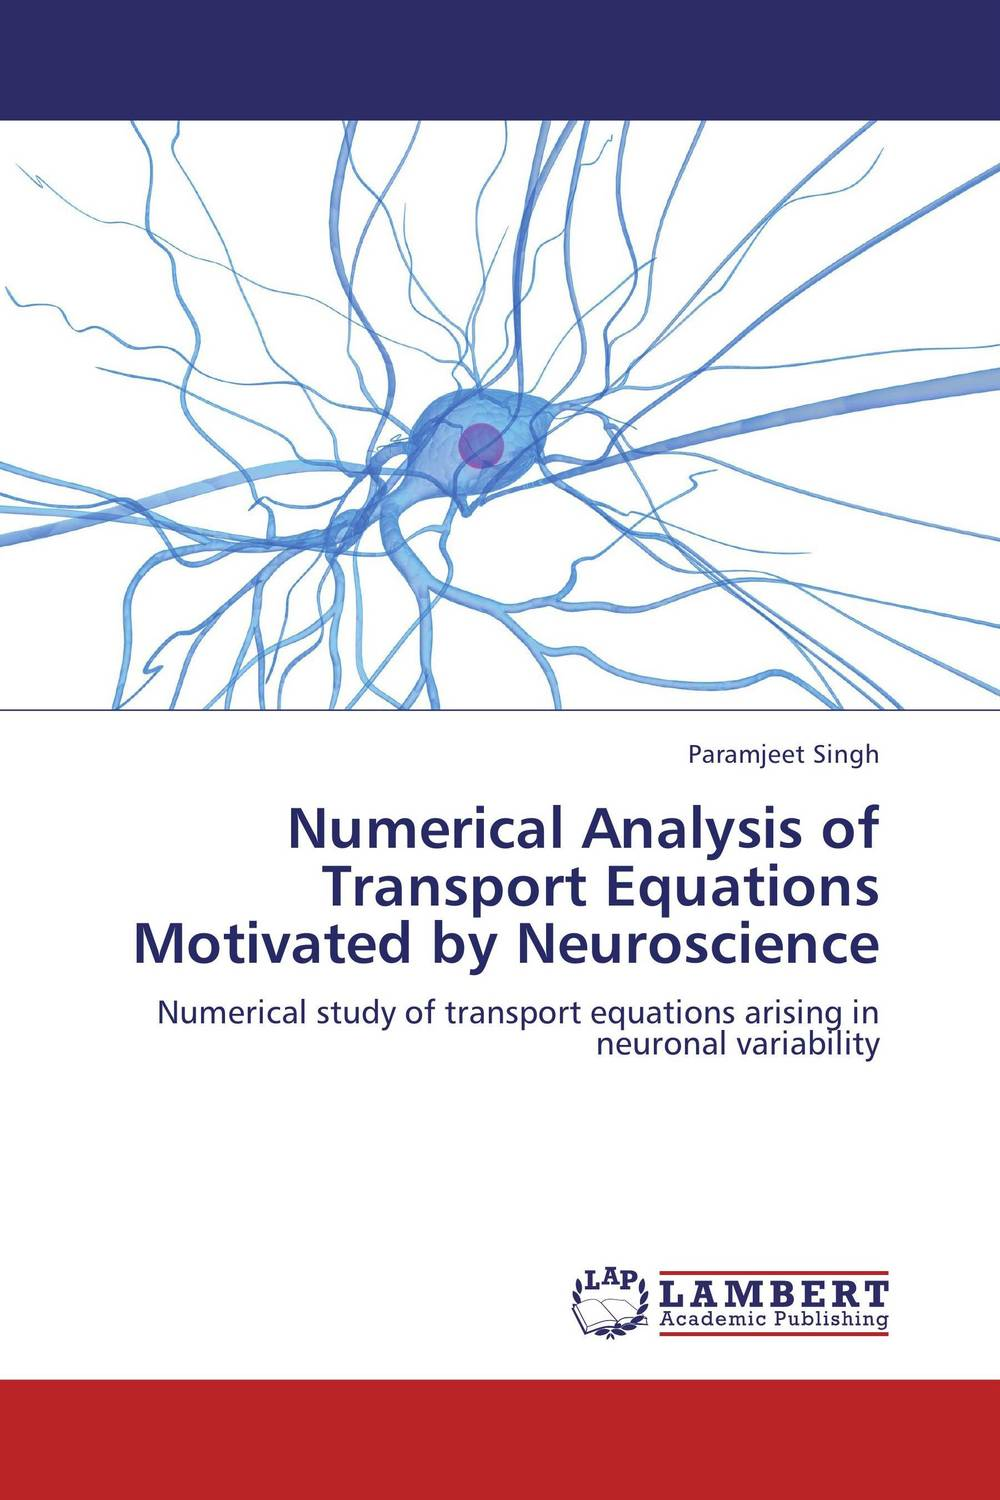 Numerical Analysis of Transport Equations Motivated by Neuroscience